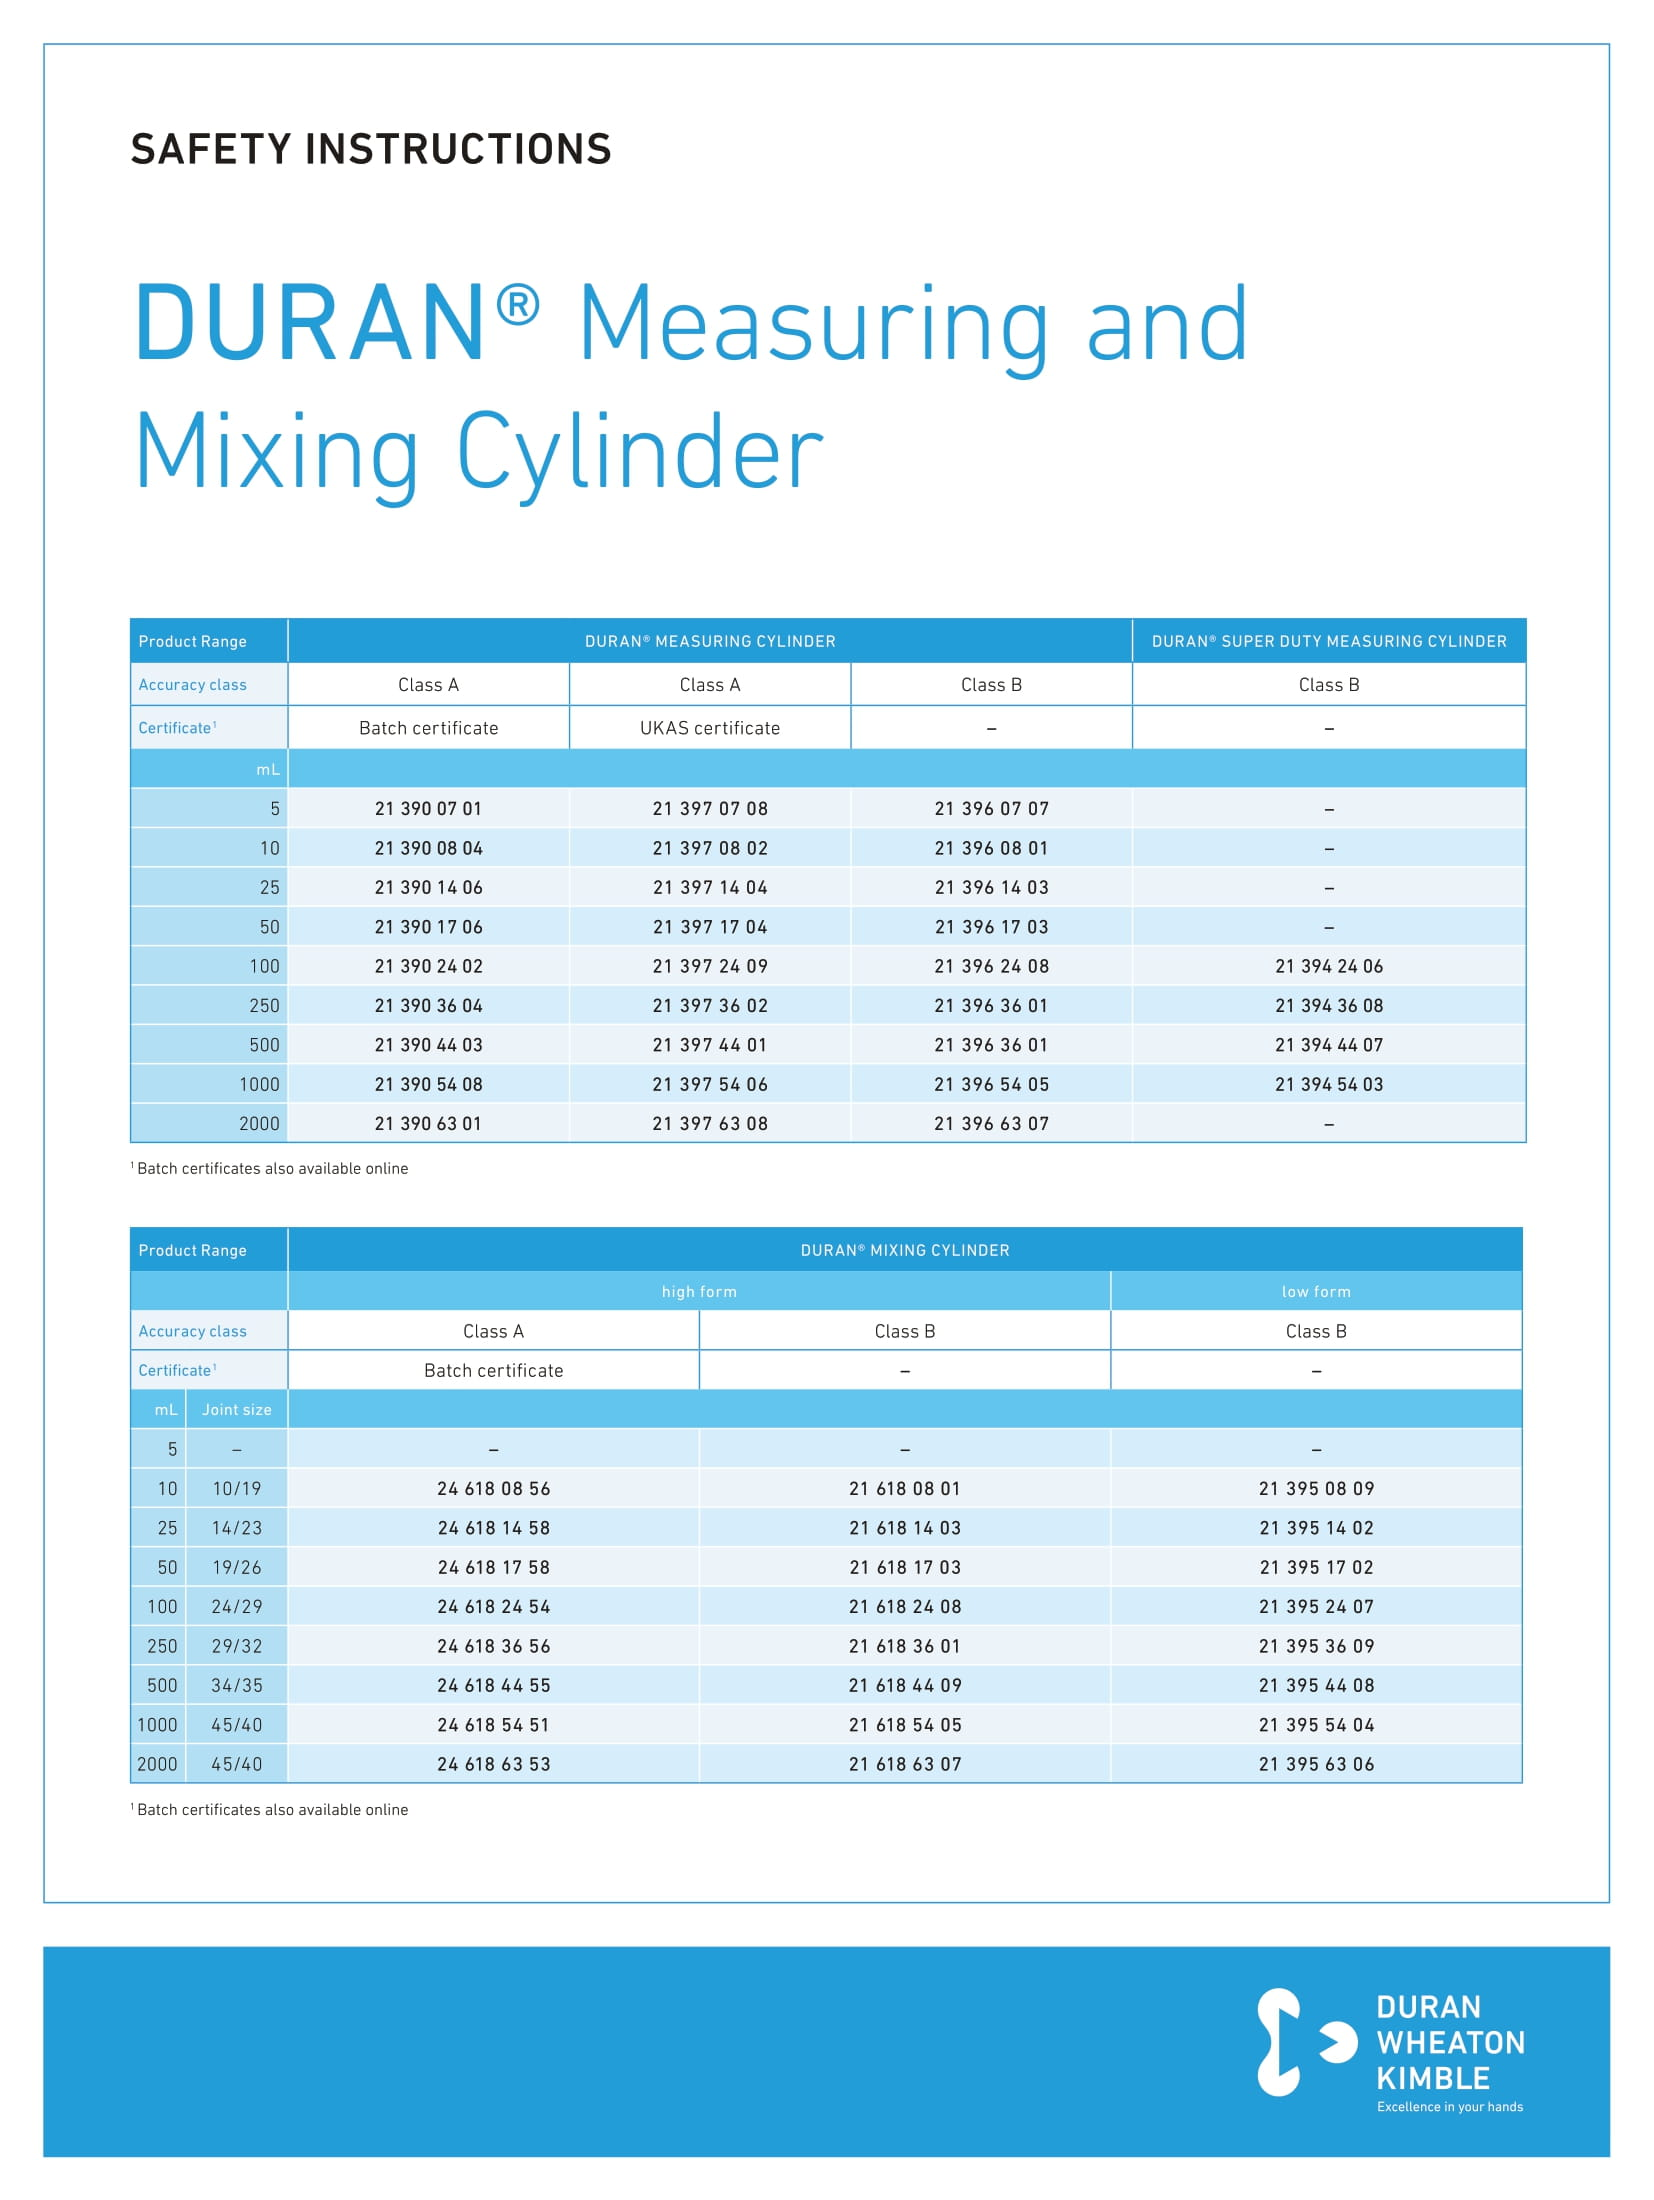 DWK SAFETY INSTRUCTIONS DURAN® Measuring and Mixing Cylinder